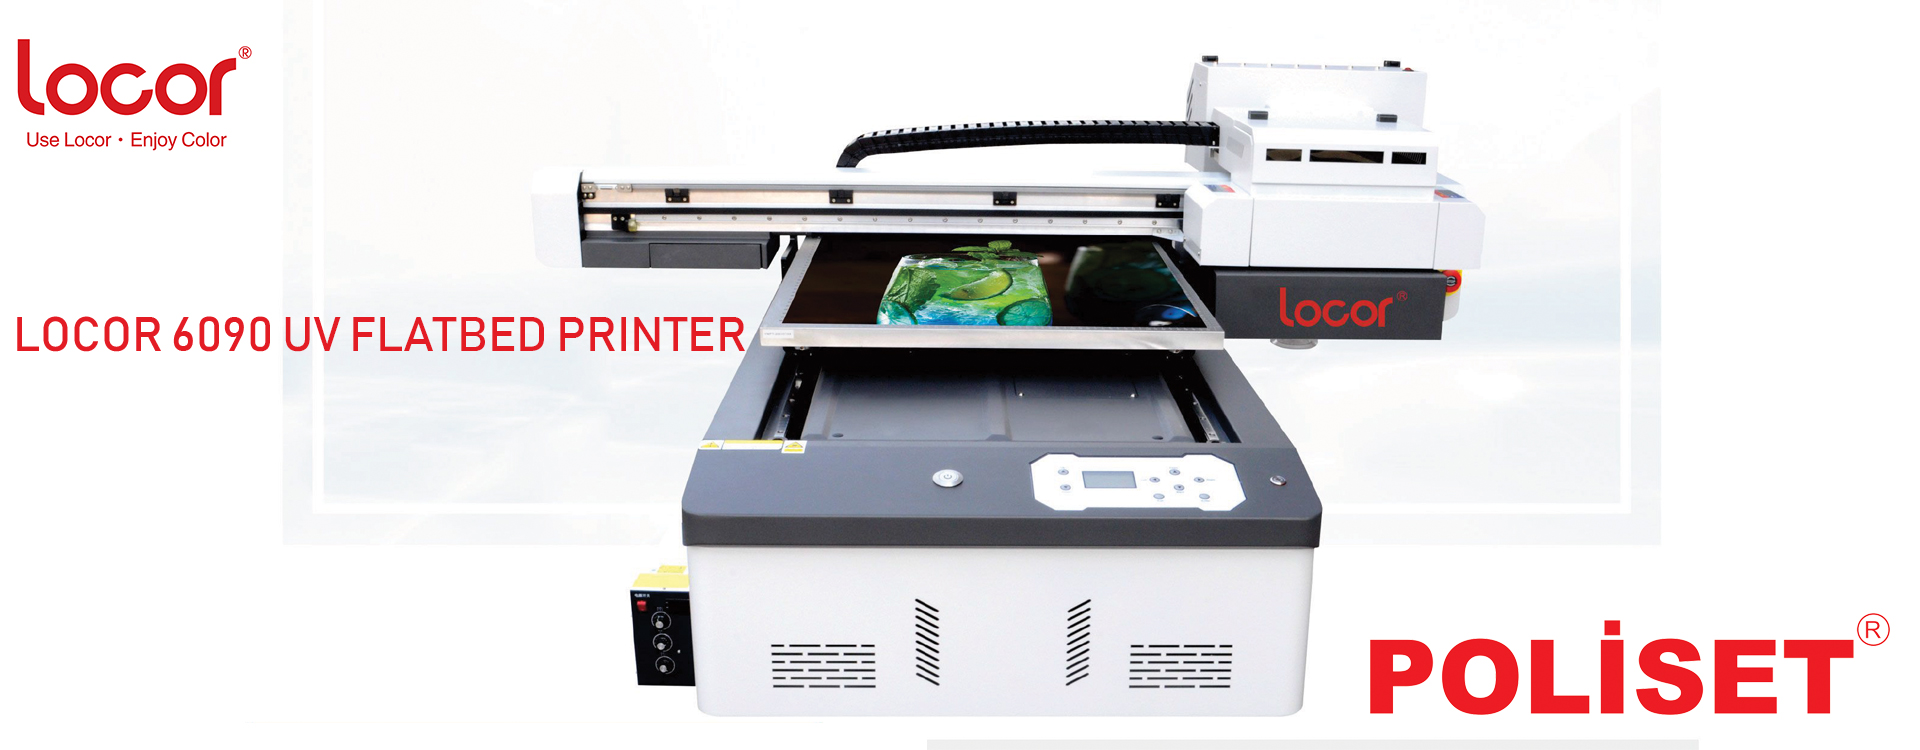 locor_6090_flatbed_printer_satis_bayi_istanbul